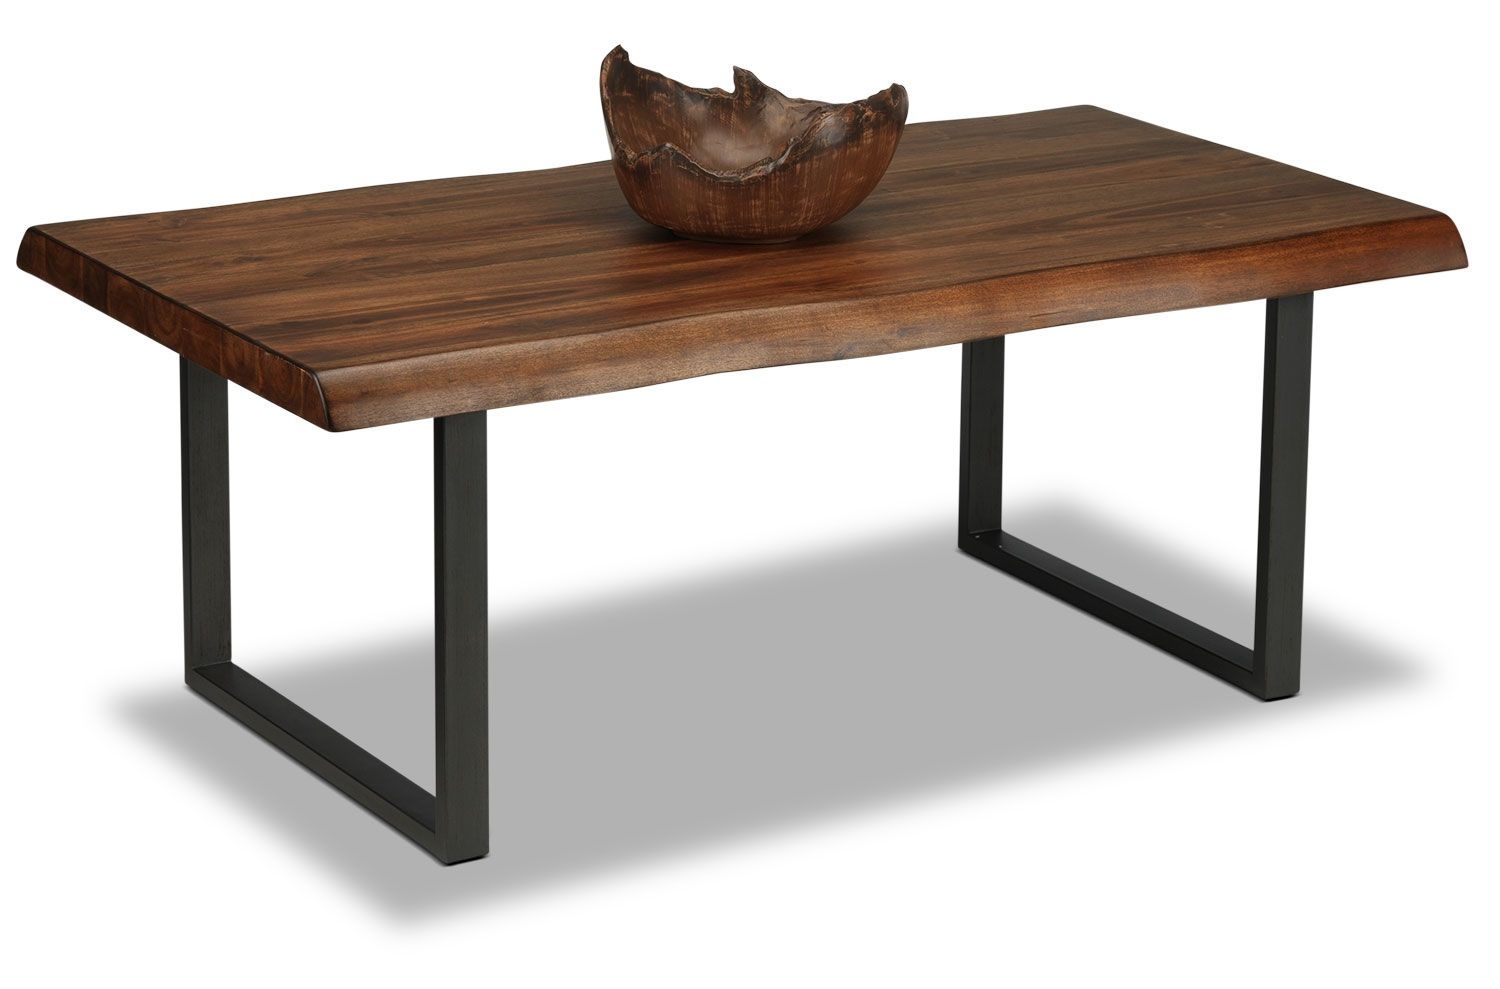 The Unique Graining Of The Acacia Wood In Walnut Of The Natura Coffee Table  Represents A Nod To Organic Sensibilities. The Rectangular Wood Tabletop Is  ...